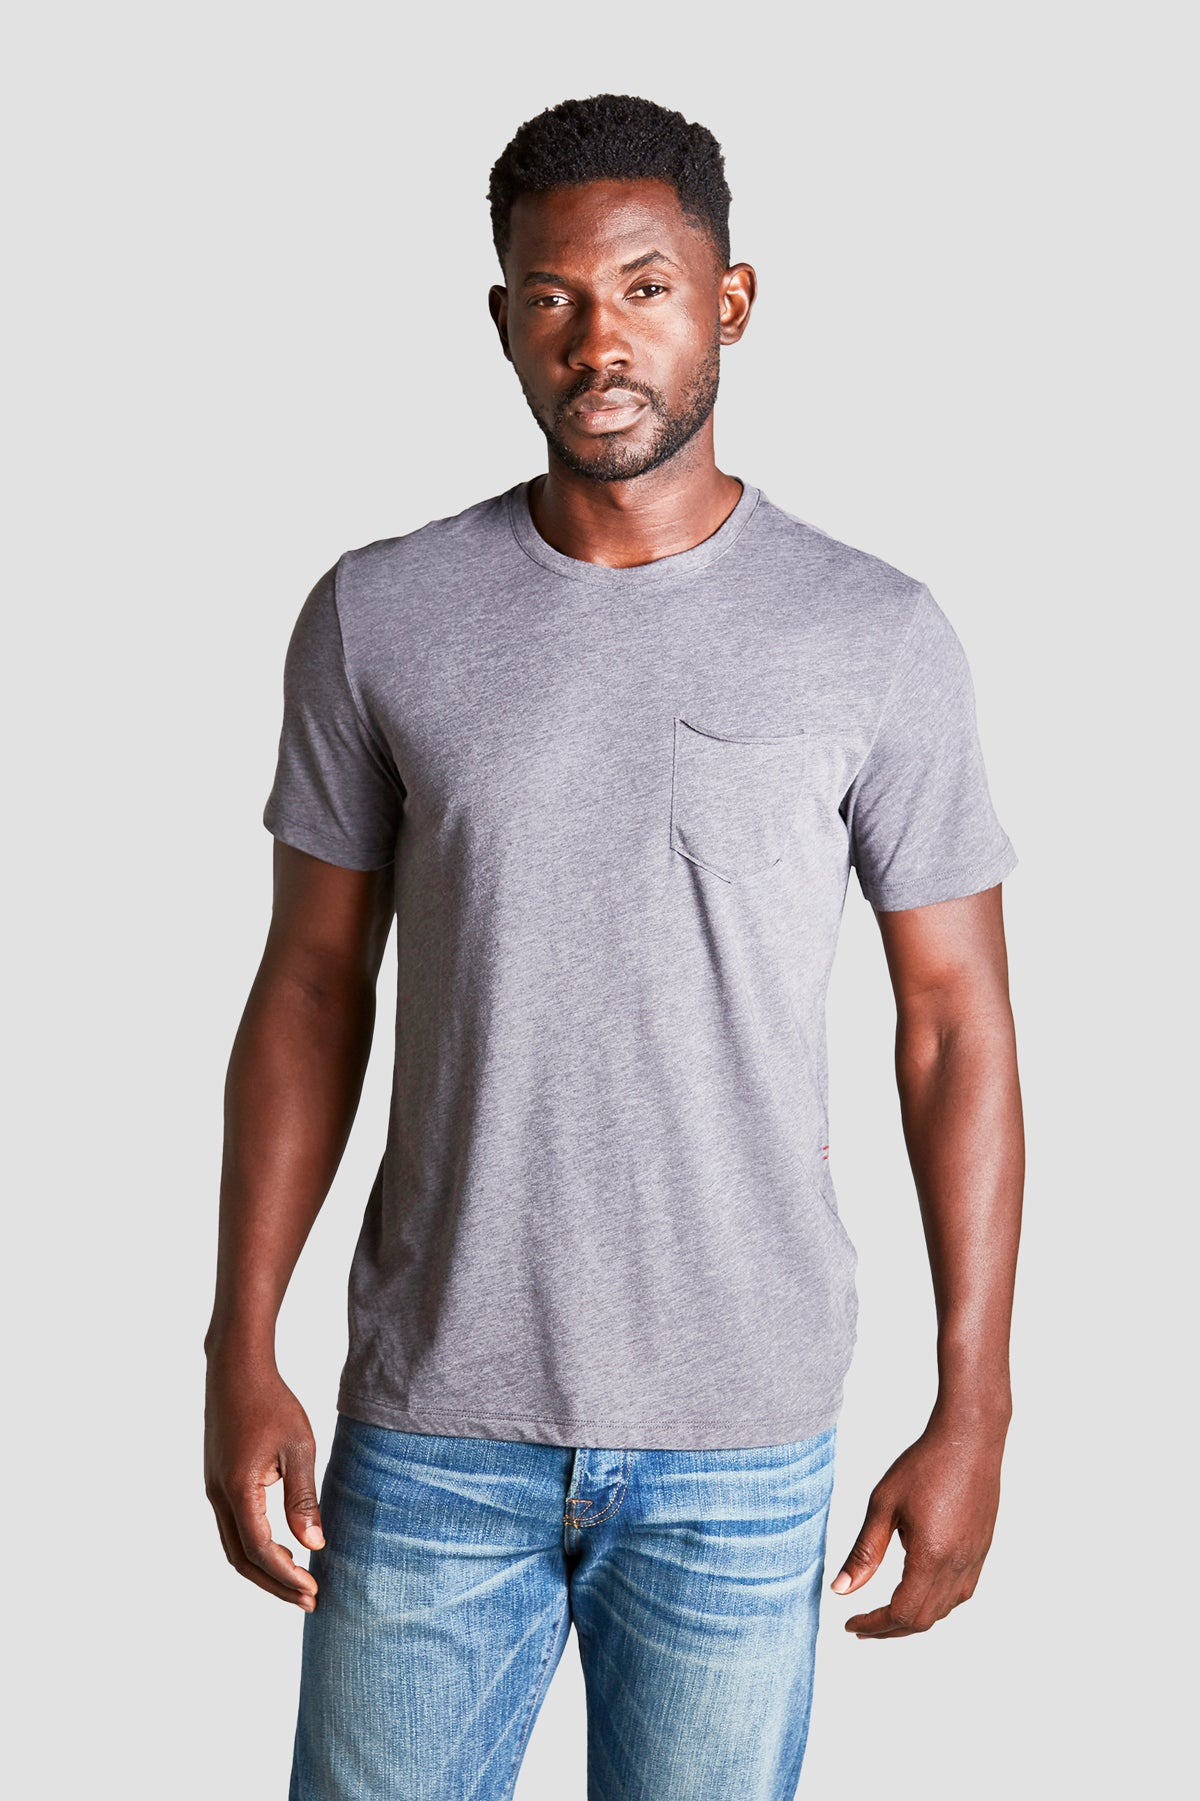 Load image into Gallery viewer, Jack Crew Short Sleeve Tee - Grey